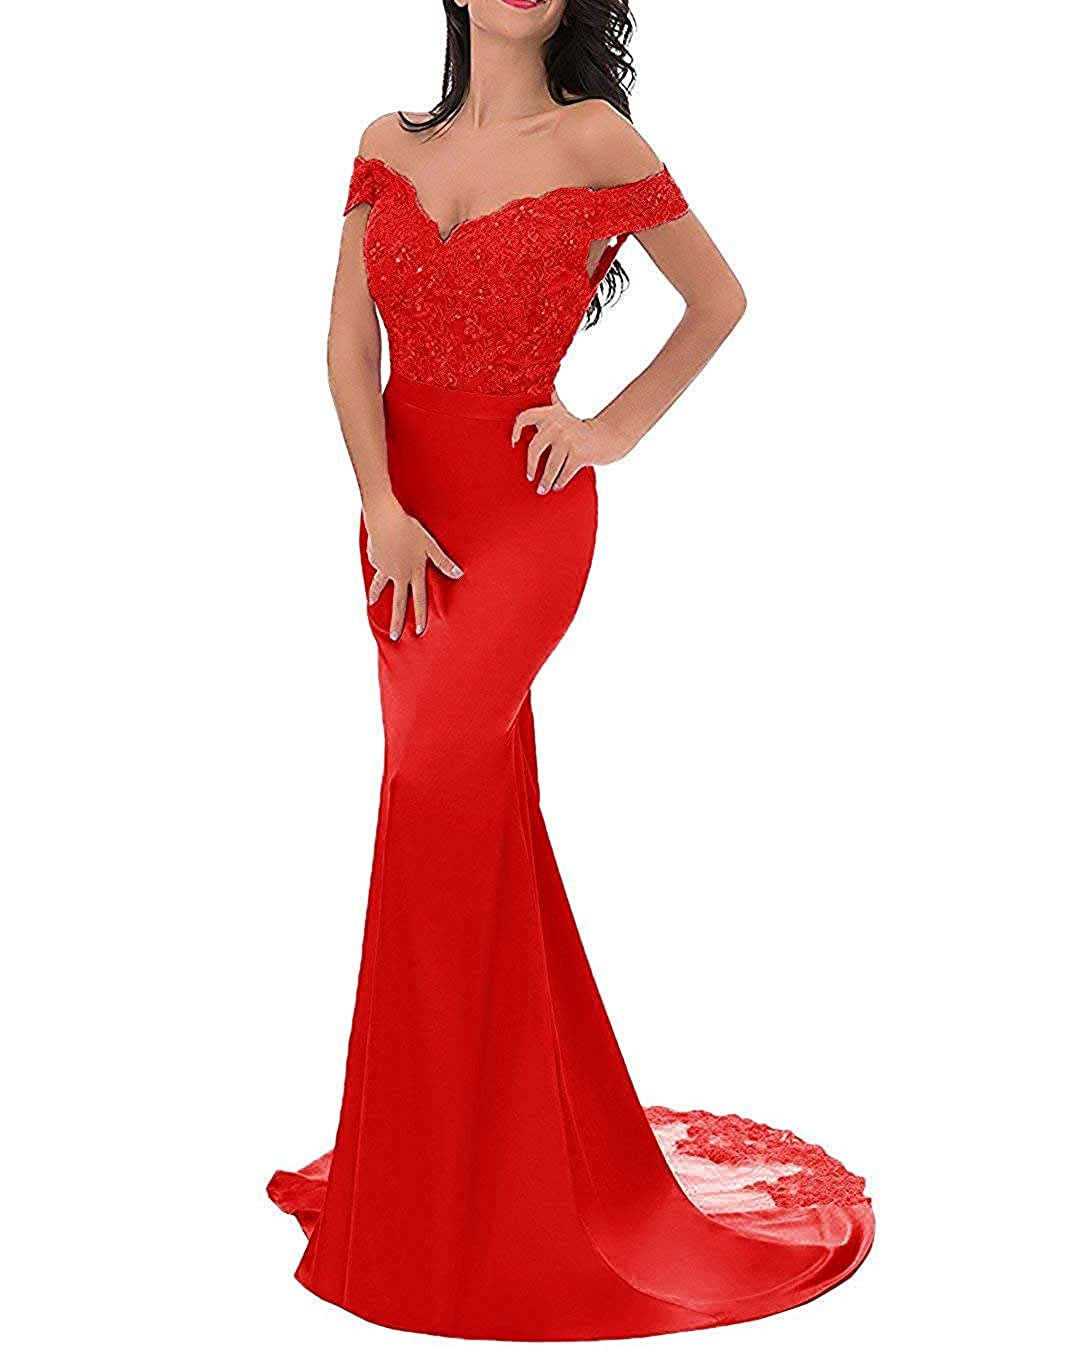 Red PearlBridal VNeck Off Shoulder Mermaid Bridesmaid Dresses Lace Long Evening Formal Gown